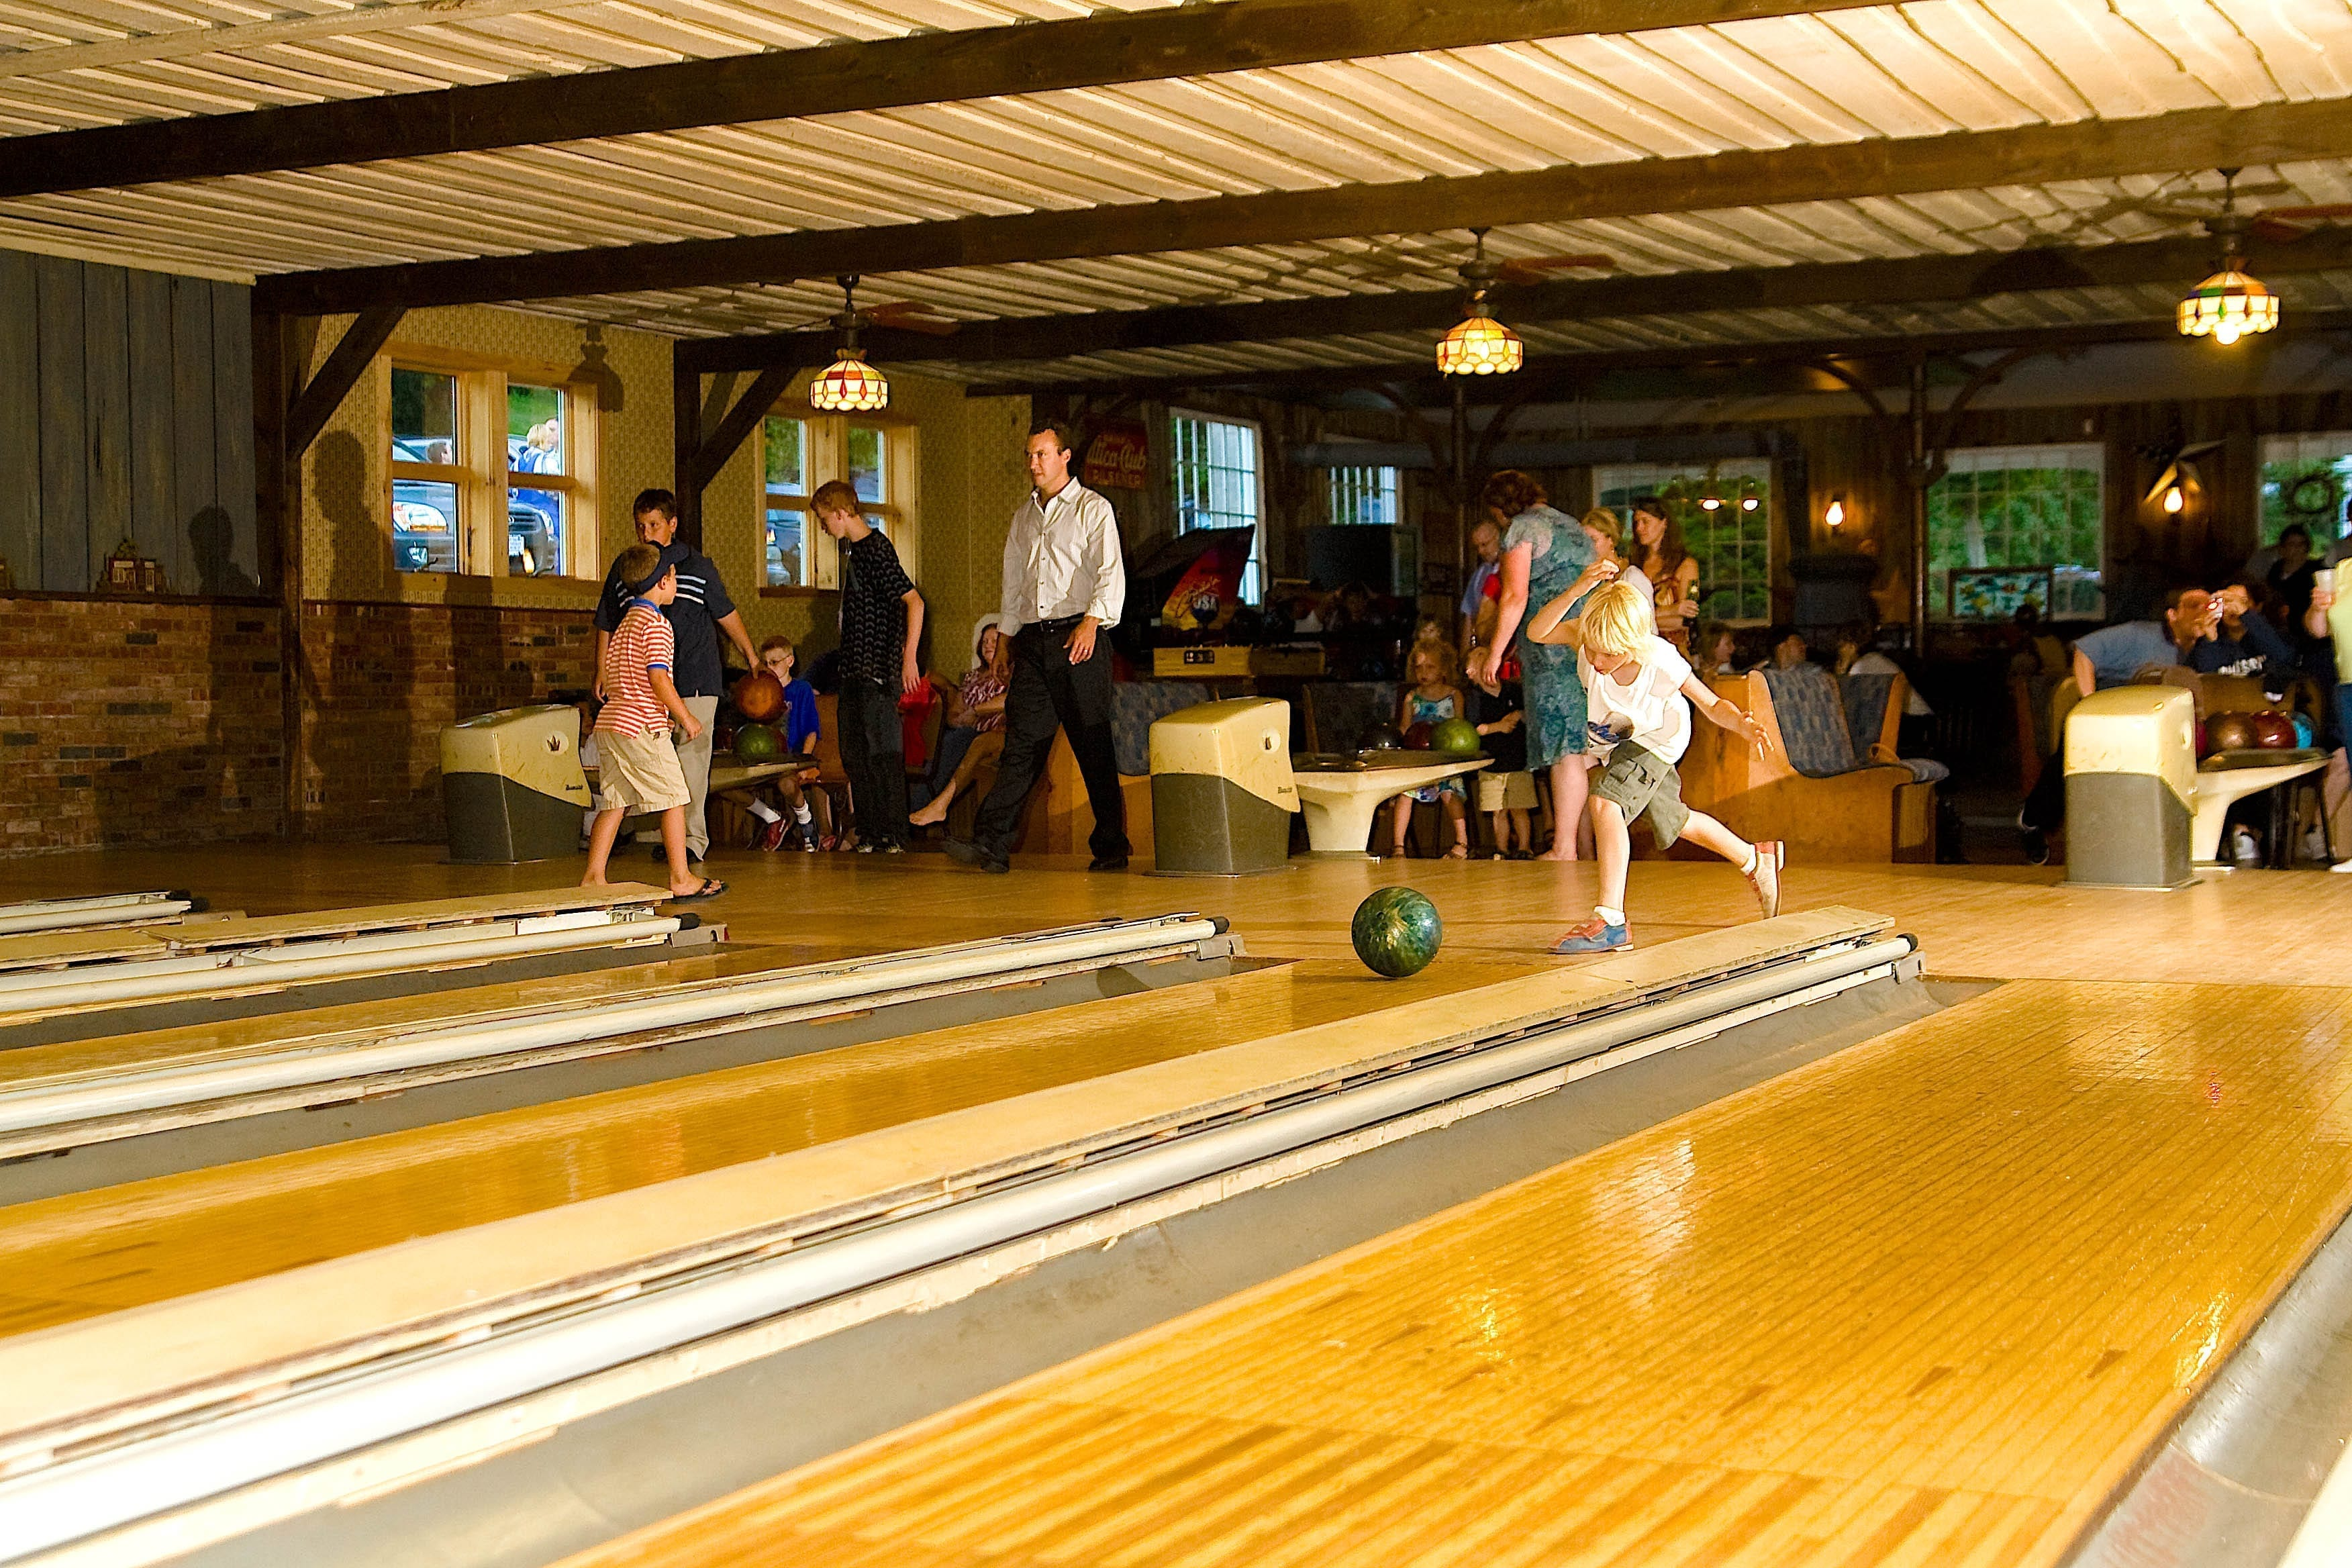 Family fun at a catskill resort